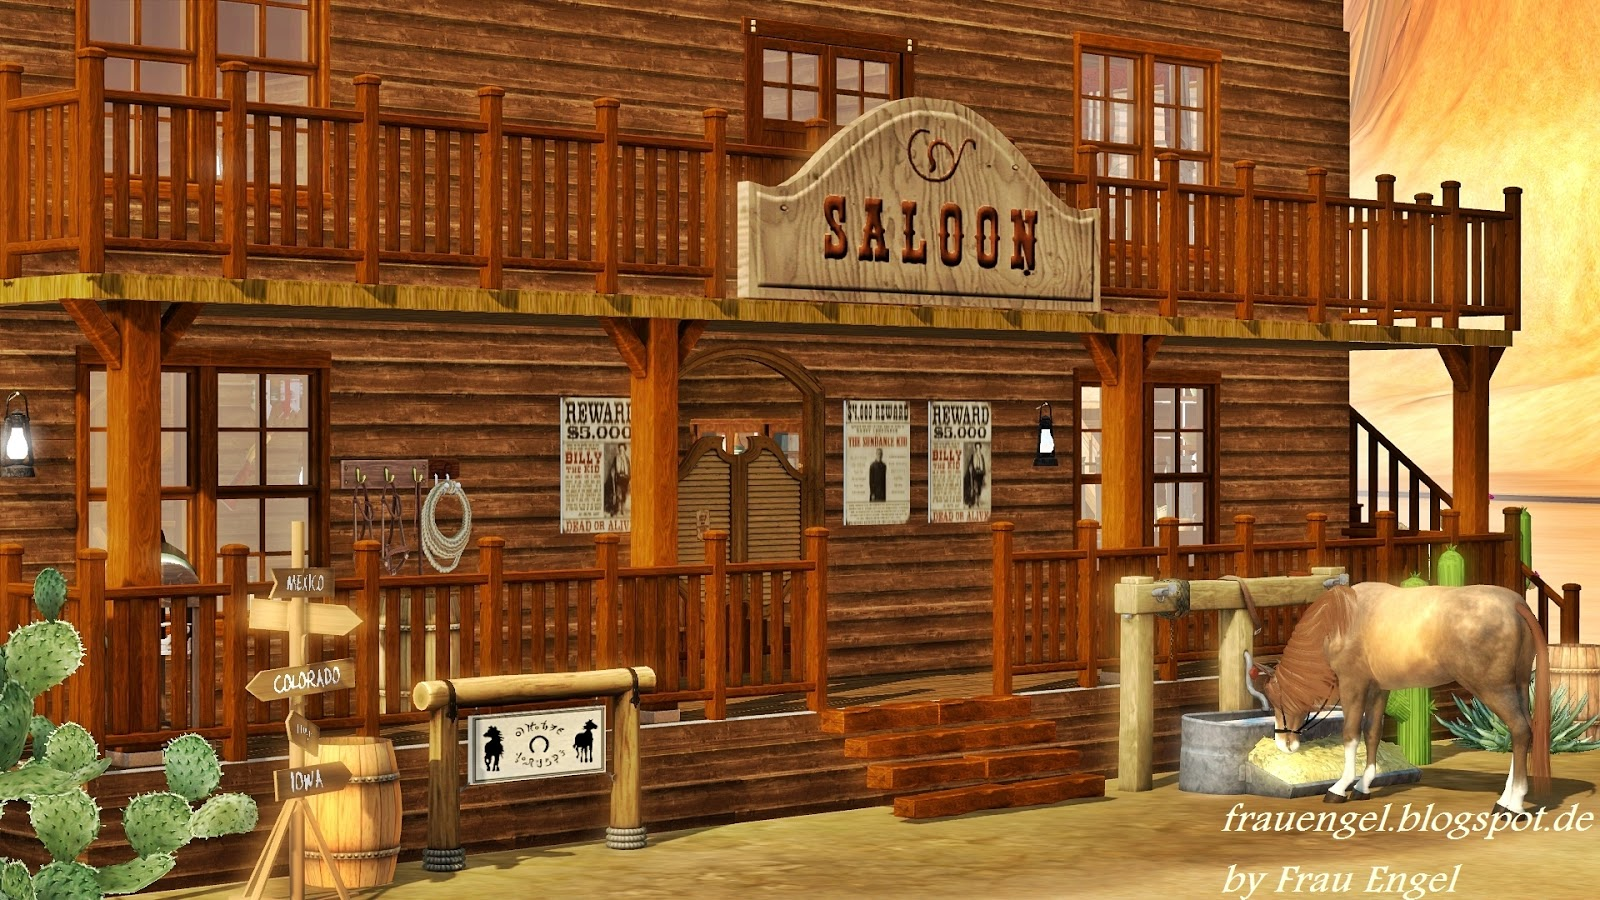 My Sims 3 Blog Saloon In The Wild West By Frau Engel